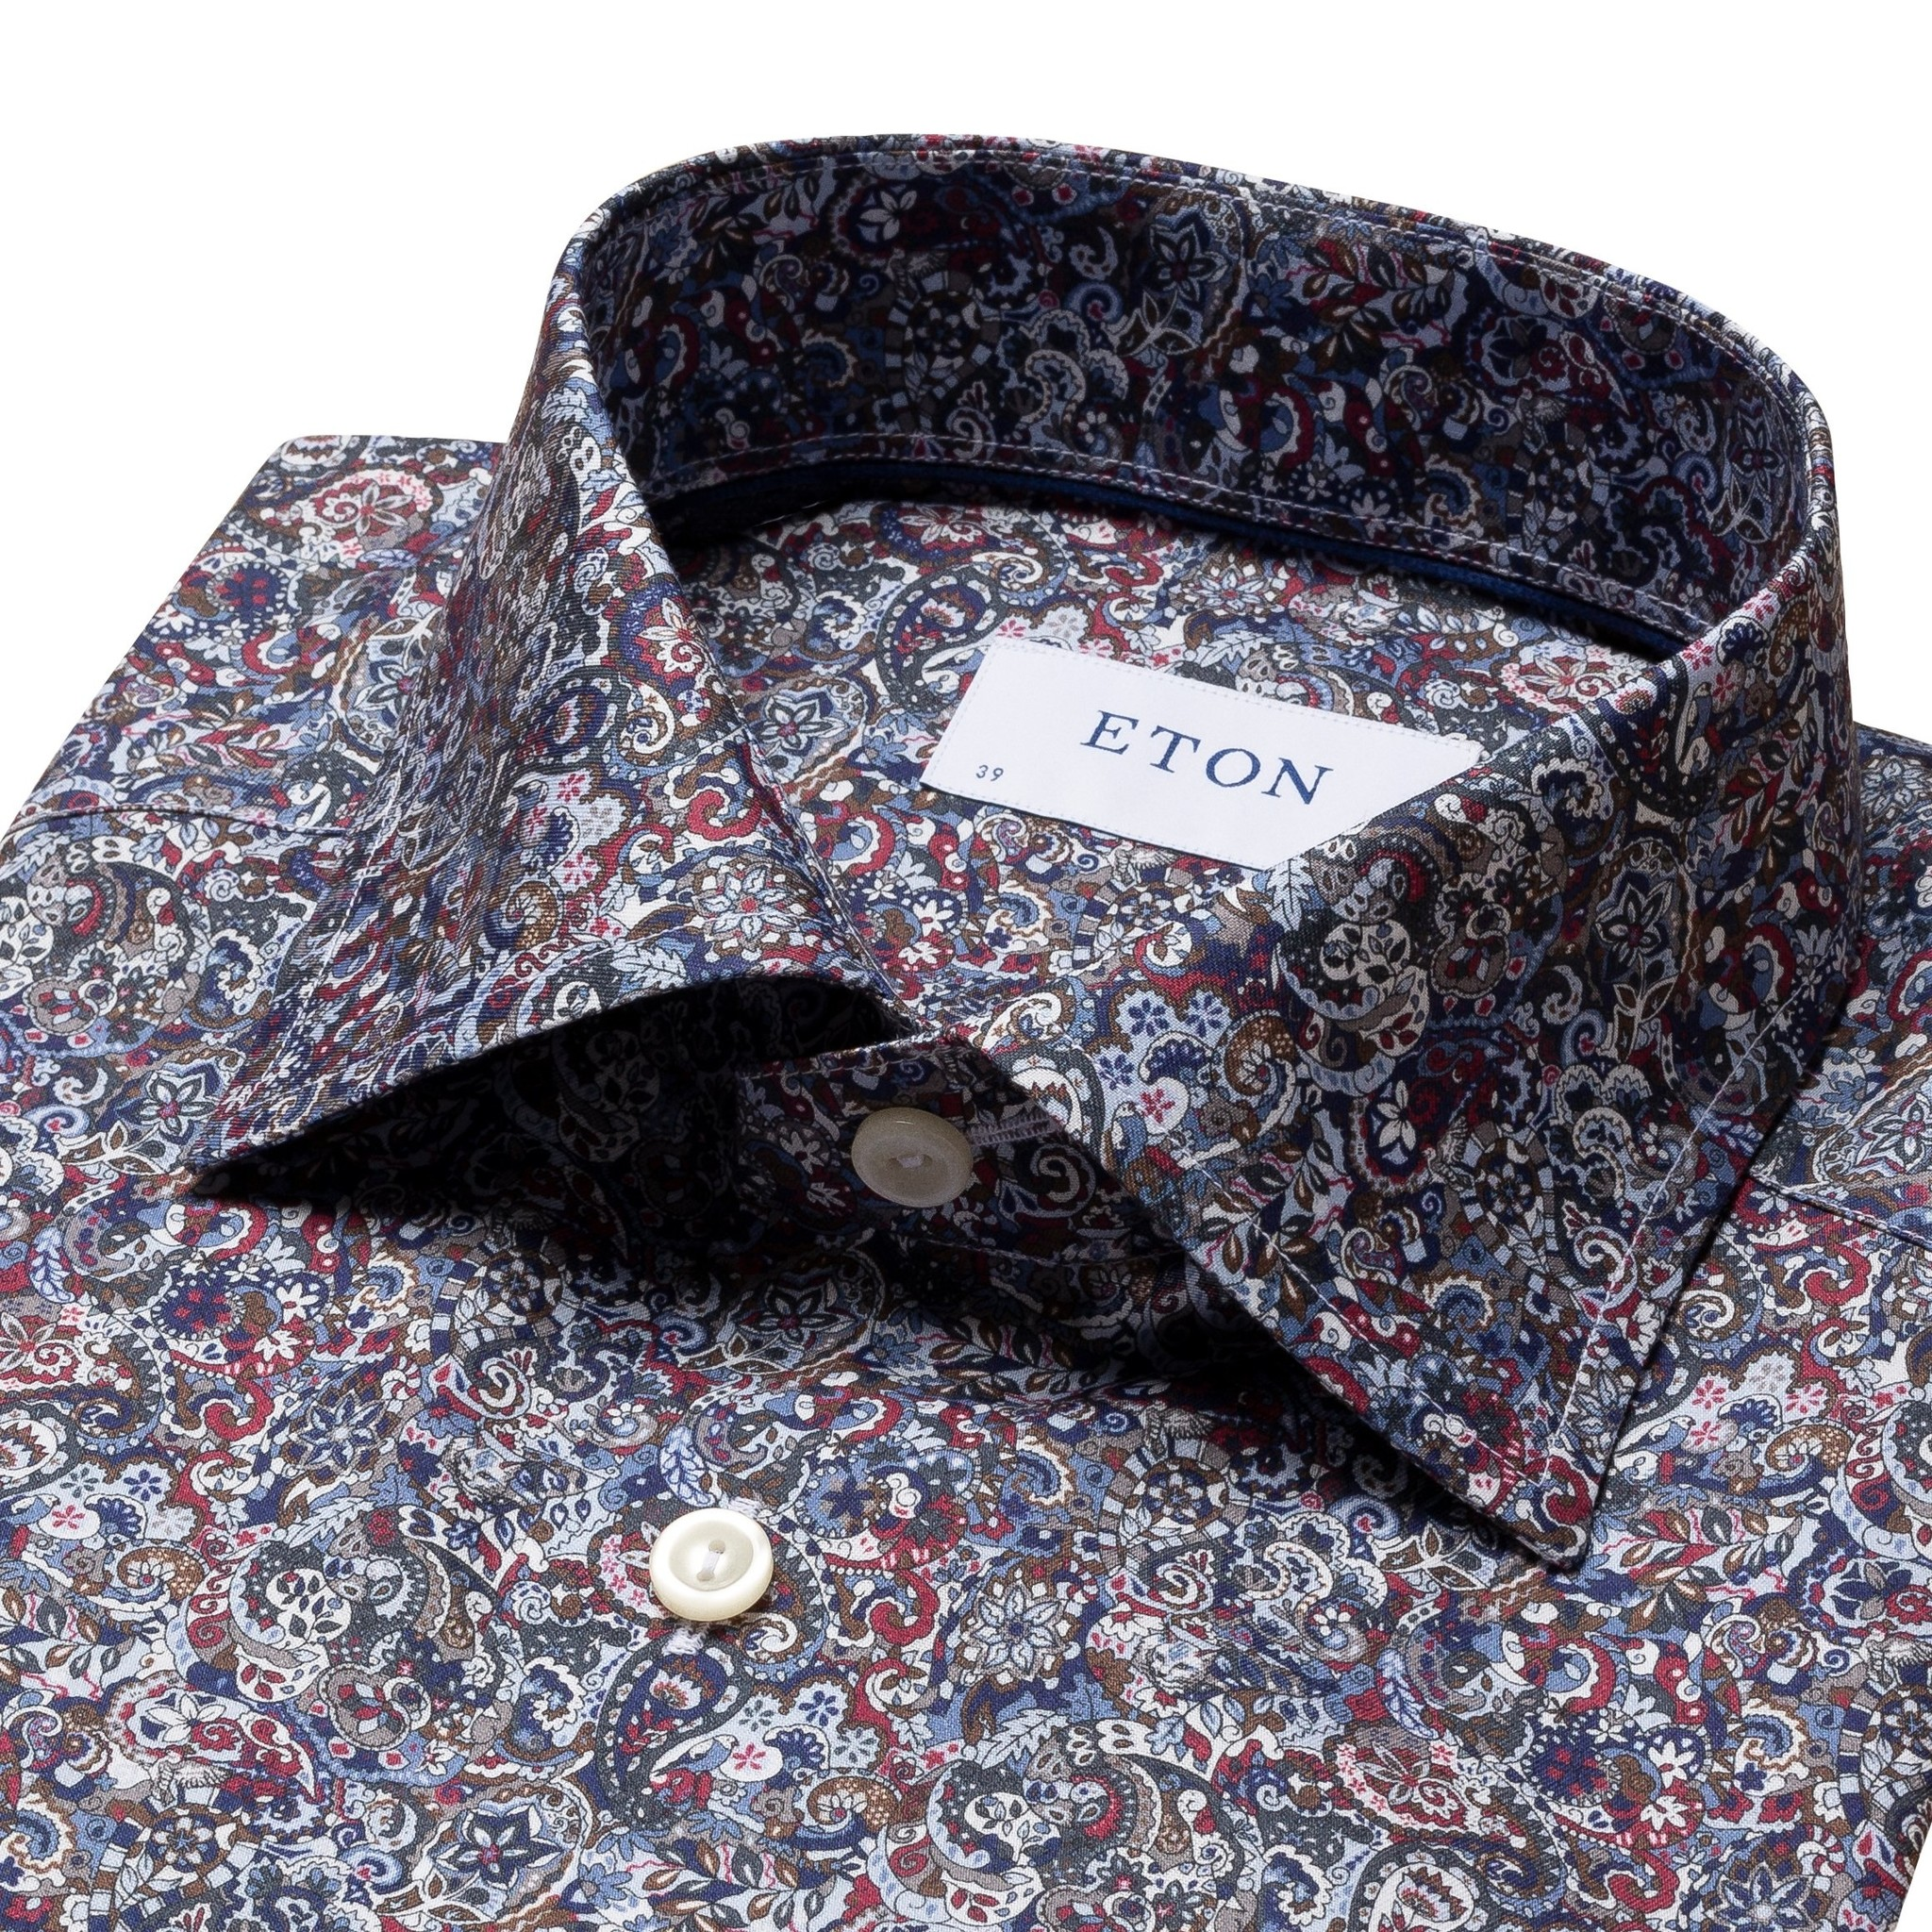 Eton Signature twill with red/blue paisley